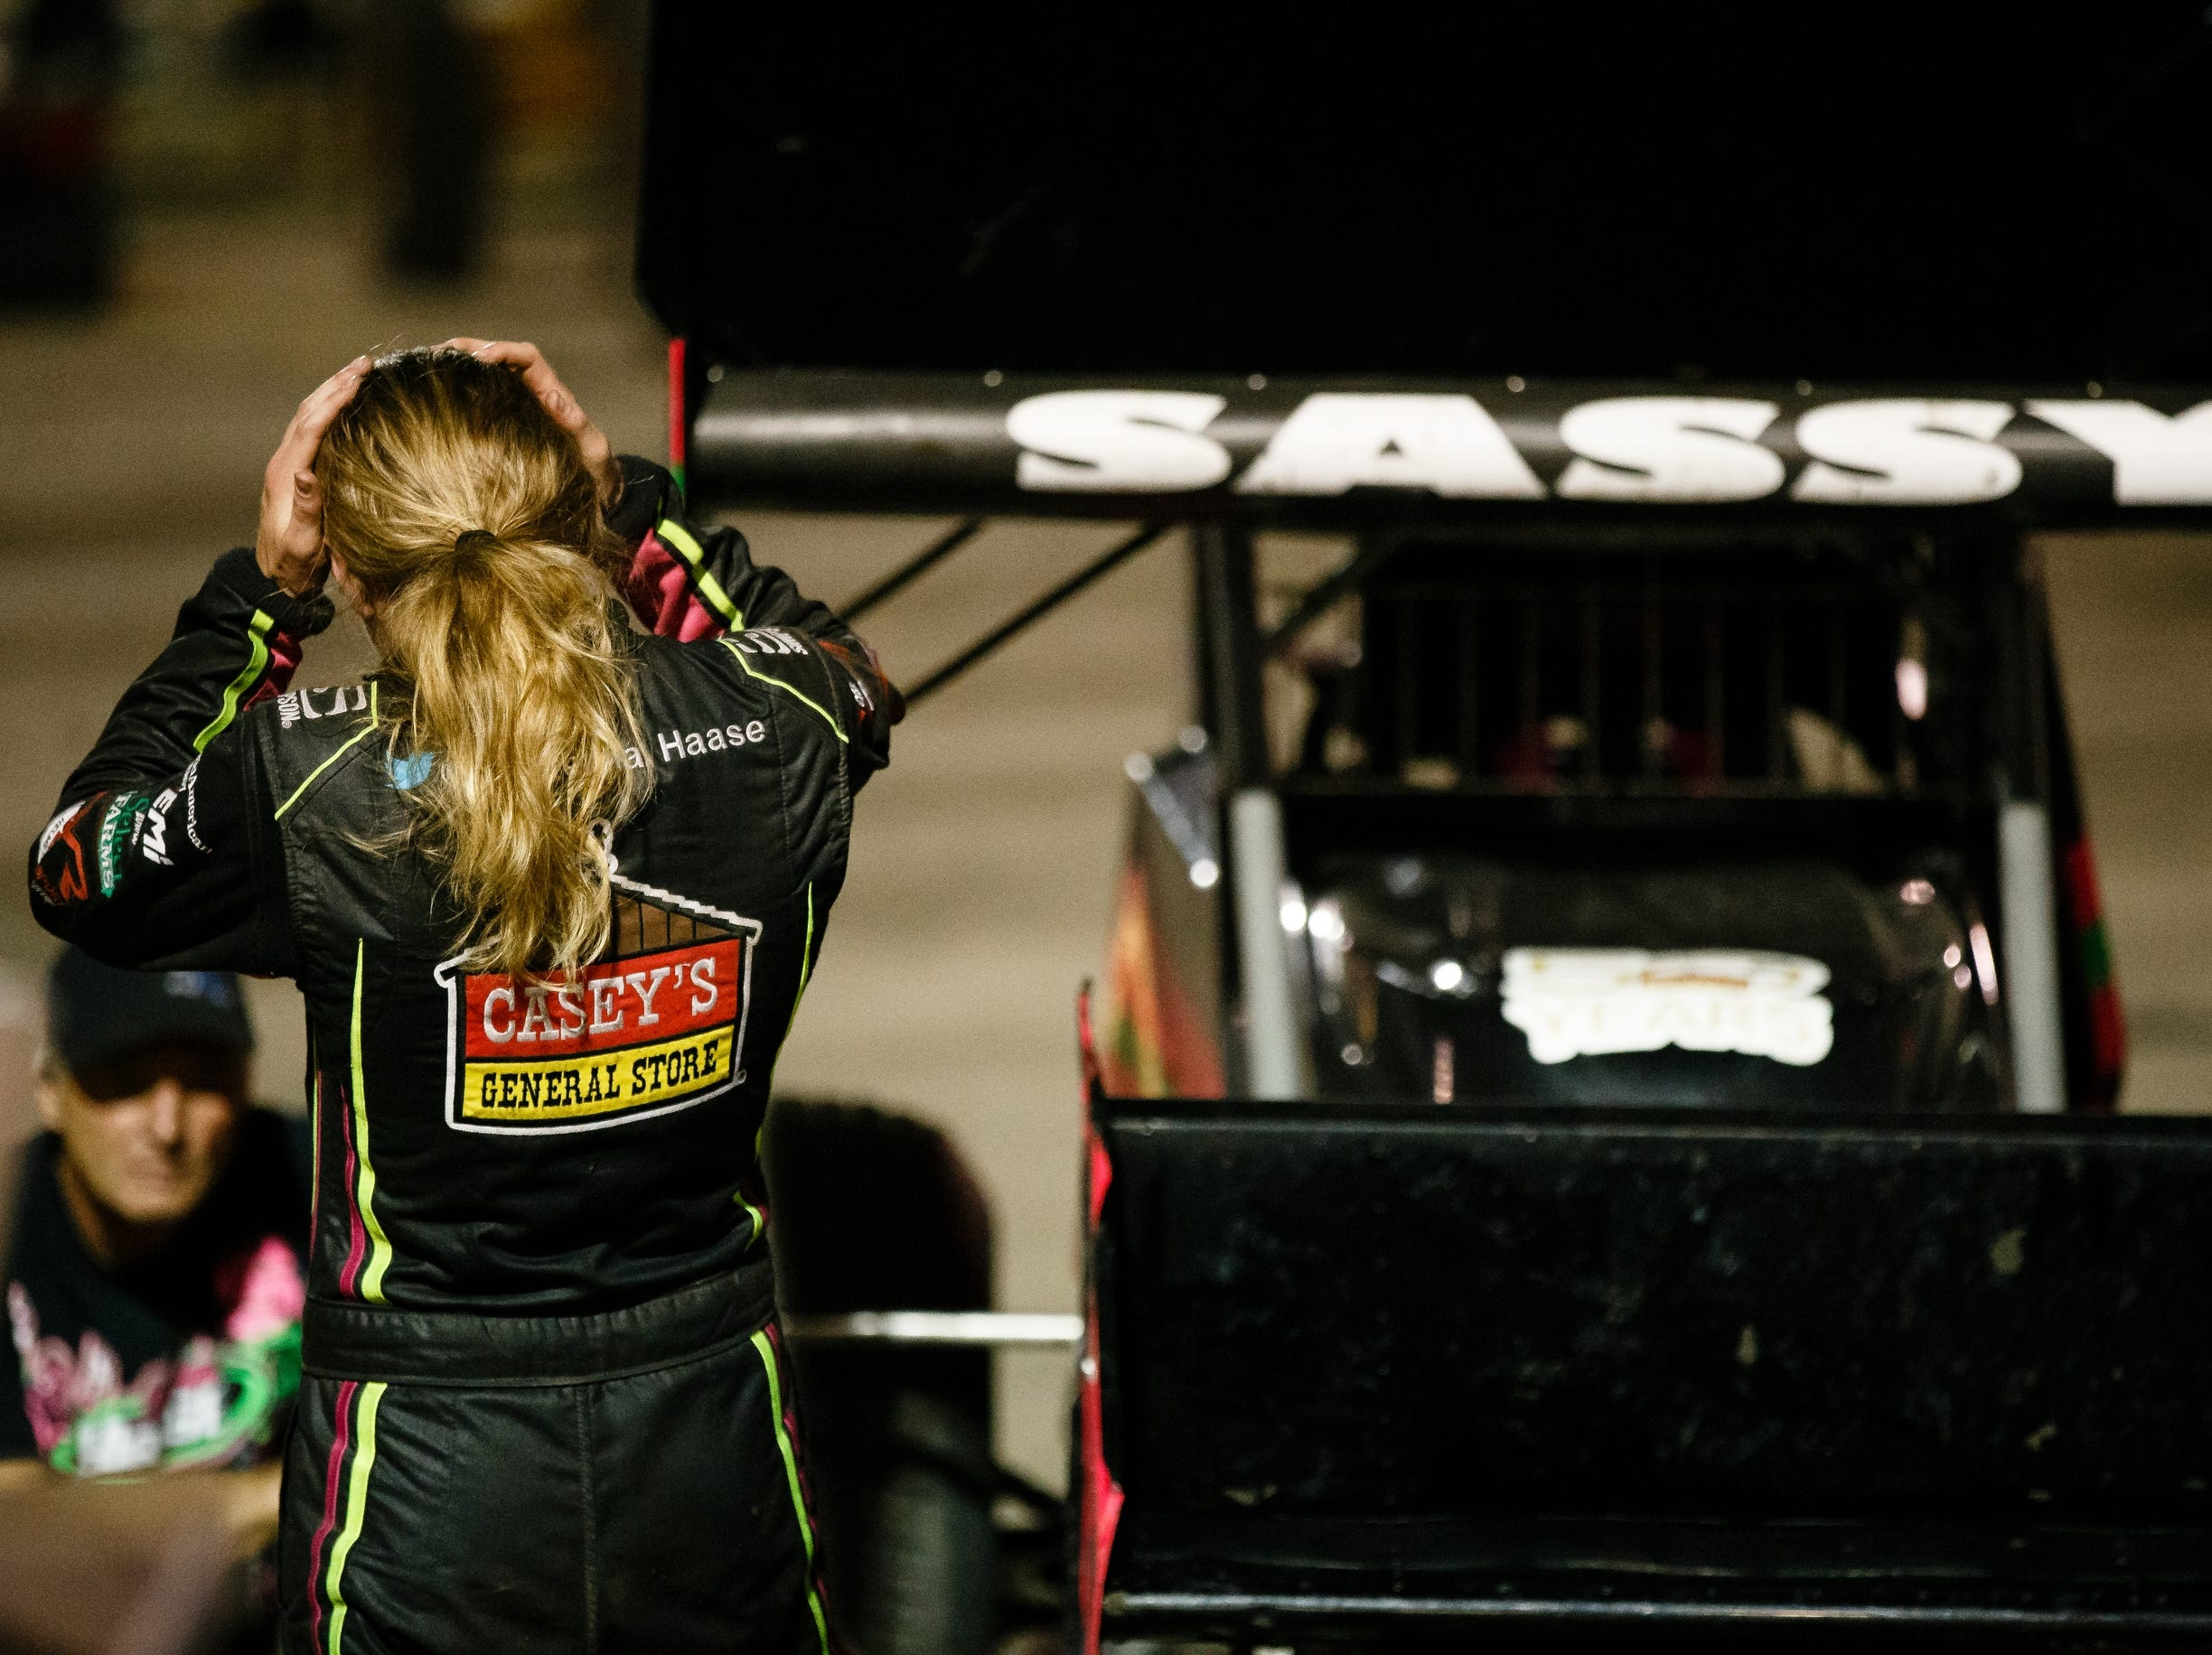 Driver of the 55 sprint car McKenna Haase, 21, talks her mechanic after hot laps on Saturday, July 14, 2018, in Knoxville. Haase is the youngest winningest racer in Sprint Car racing history and is also the only woman to win in Sprint Car racing history.